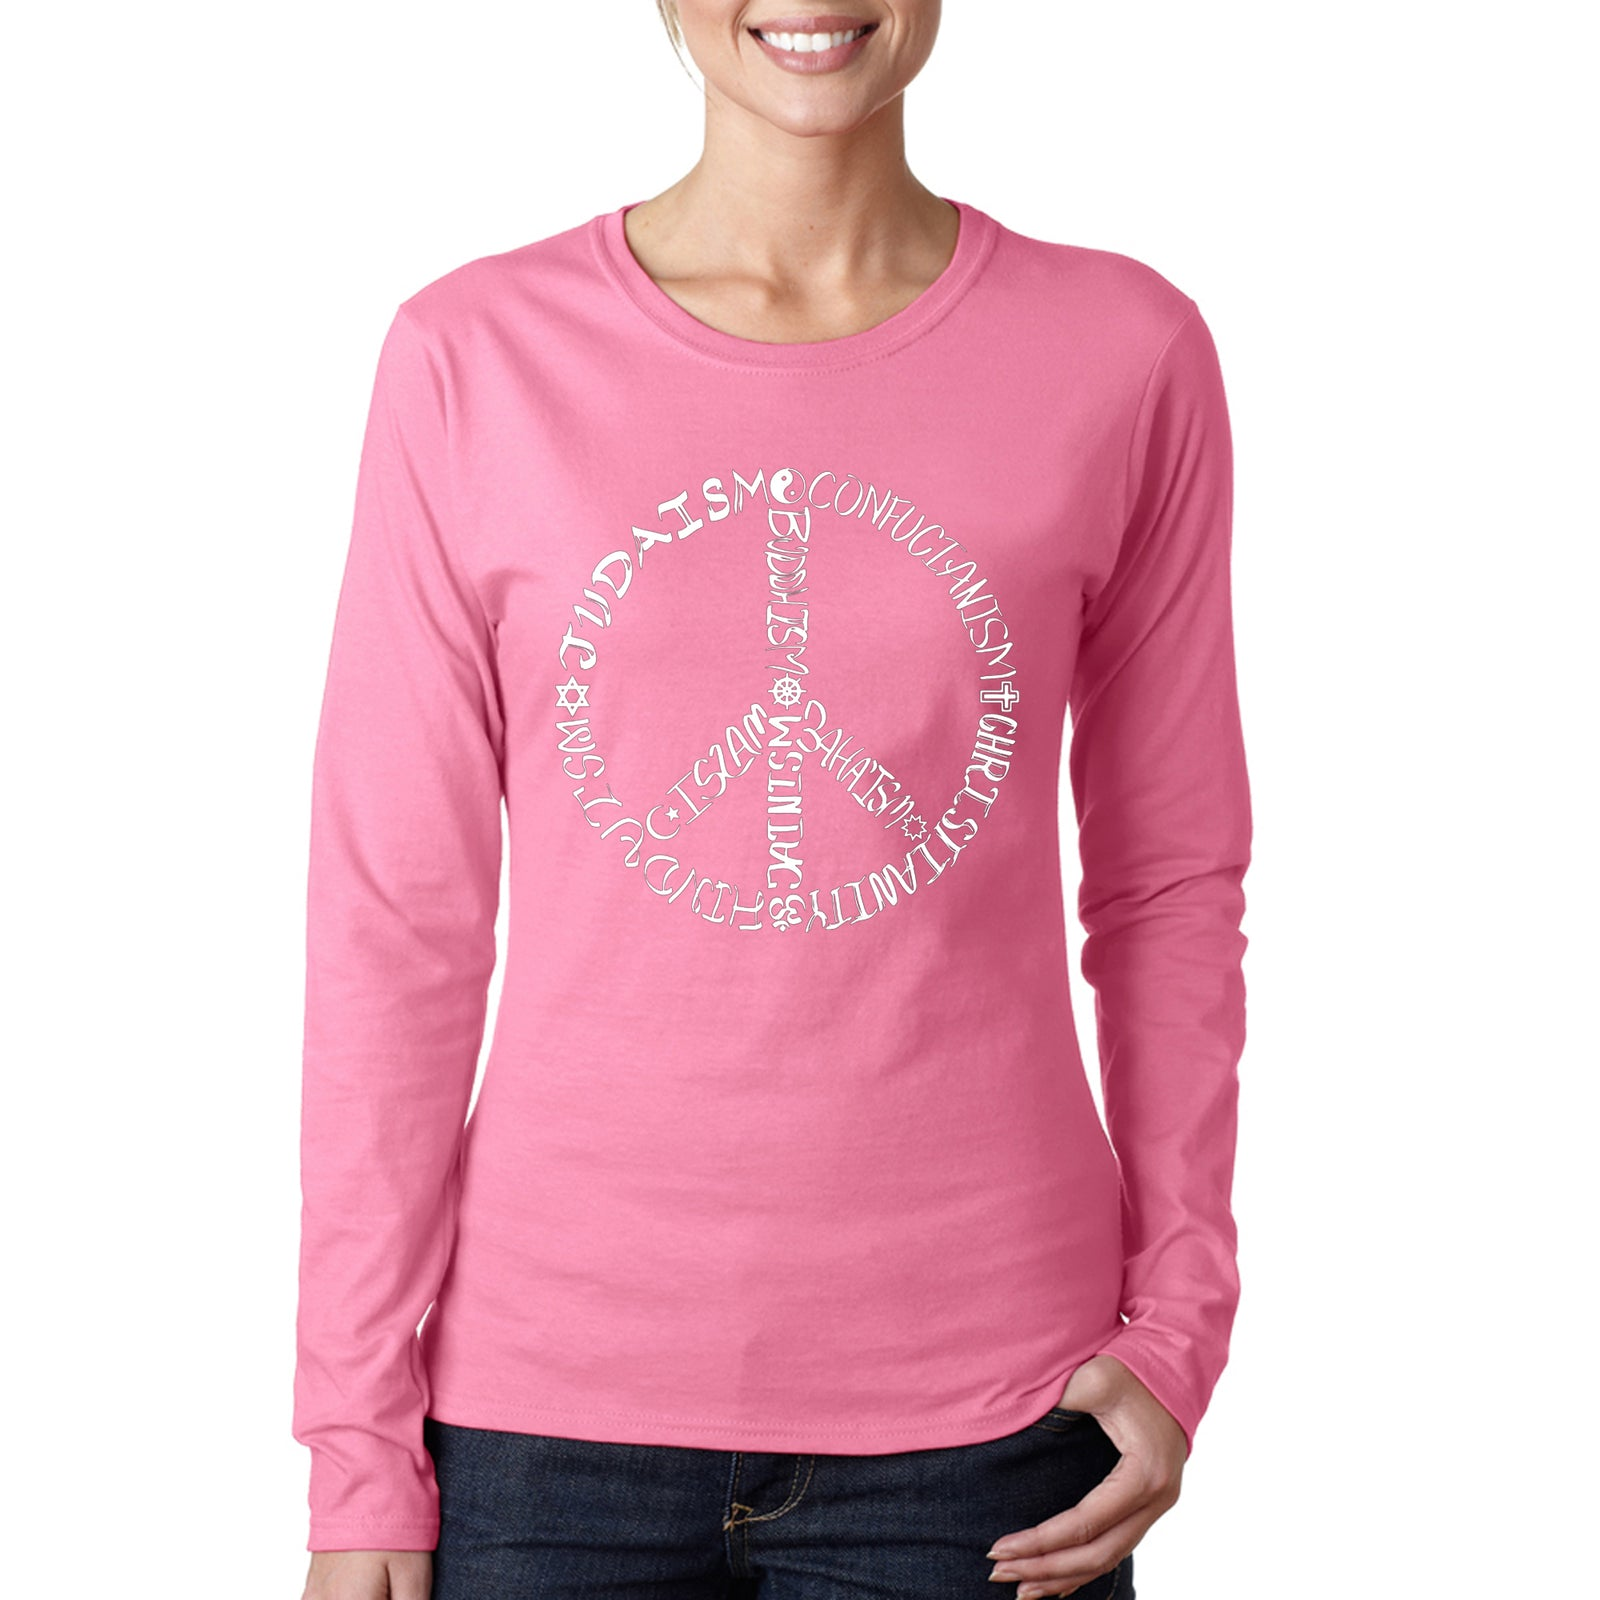 Women's Long Sleeve T-Shirt - Different Faiths peace sign